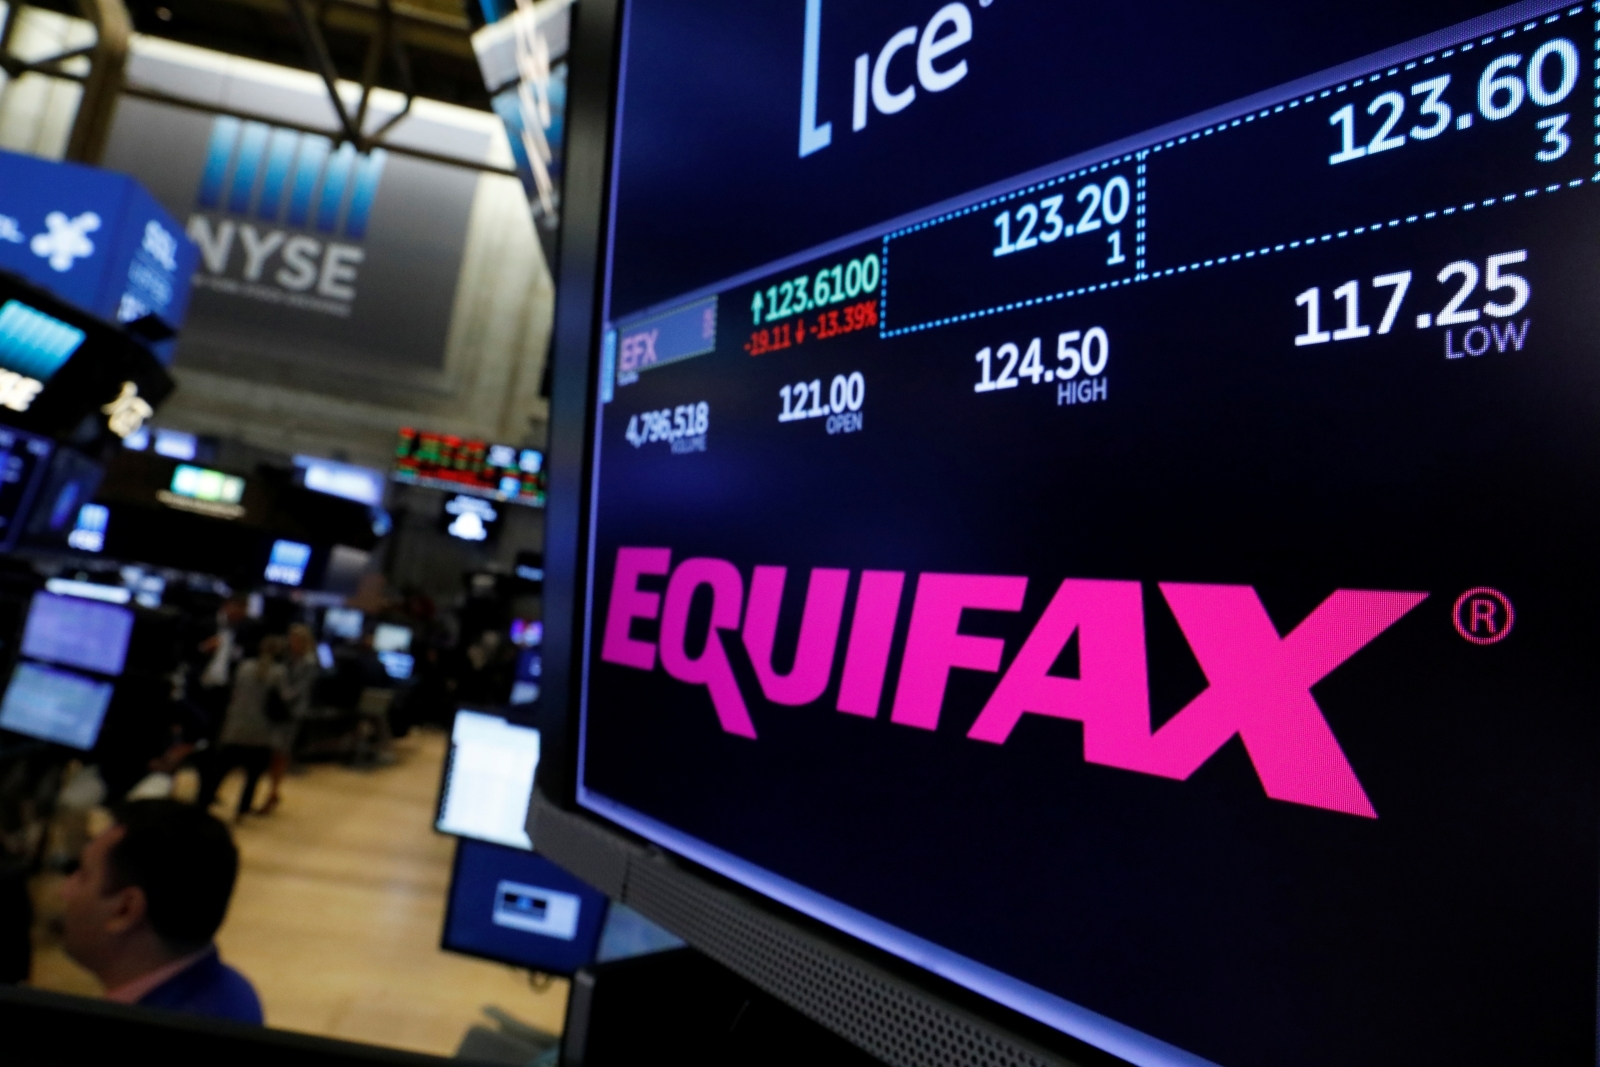 Equifax data breach impacts almost half of the United States citizens